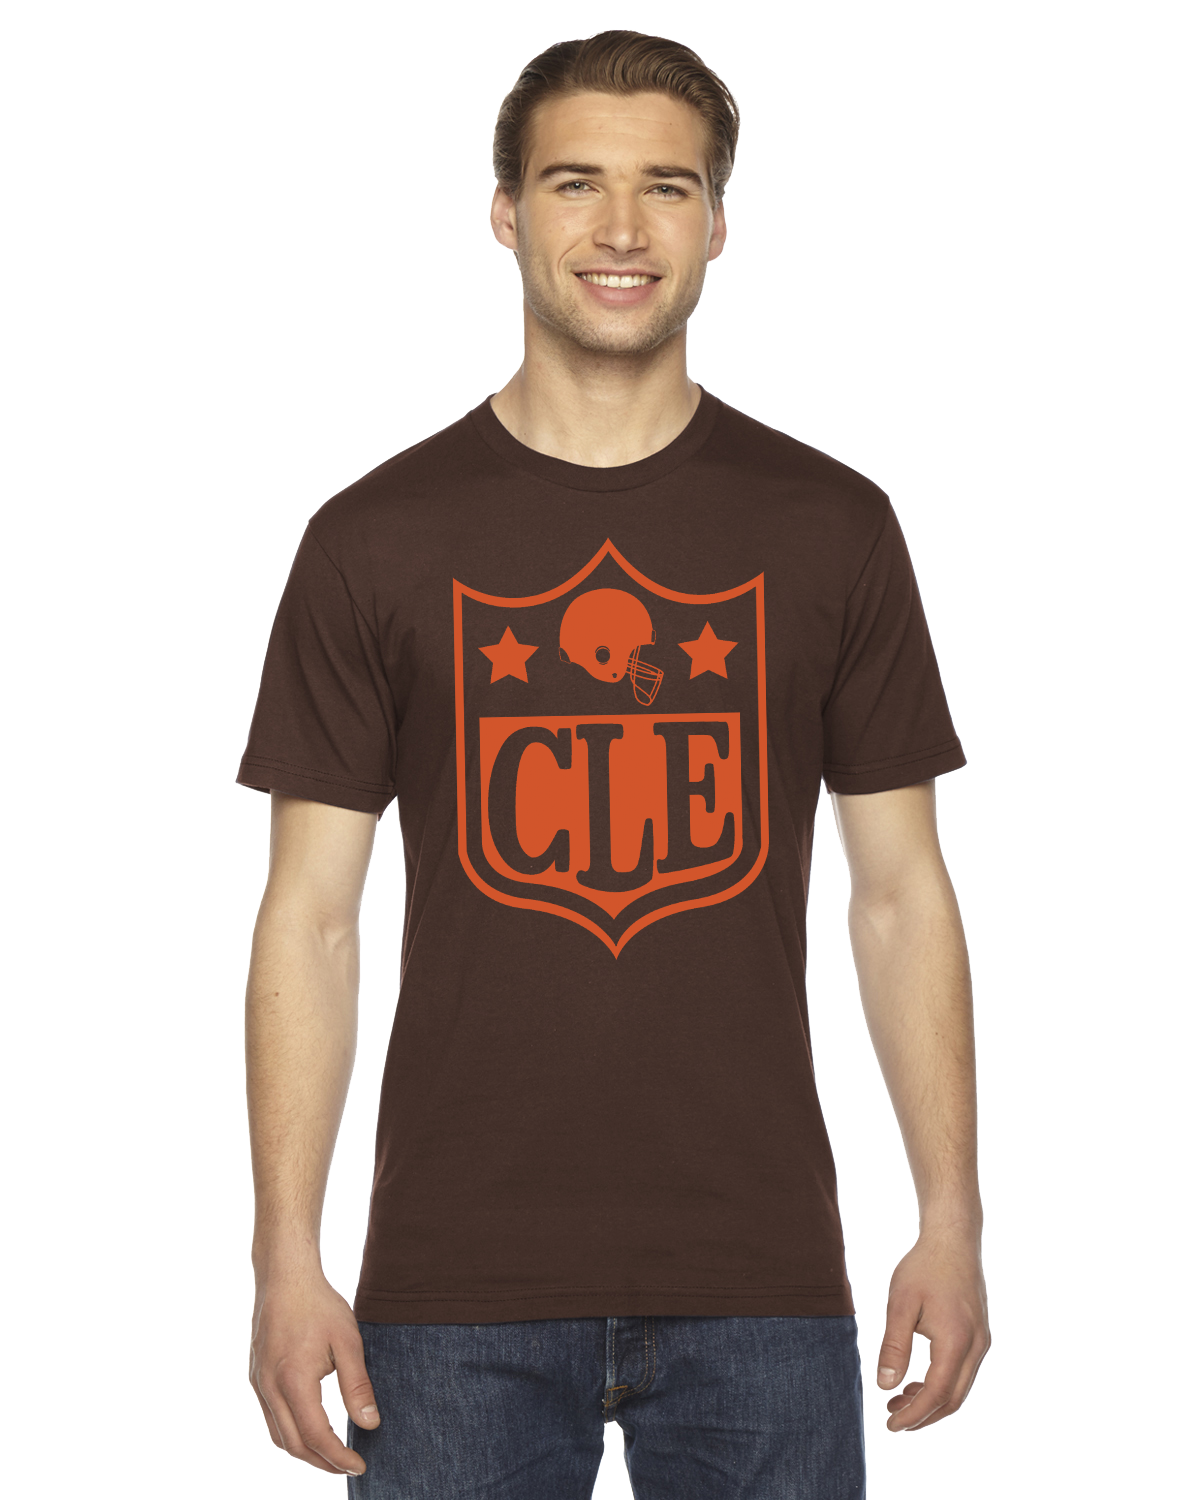 Image of CLE NFL Color Rush Tshirt